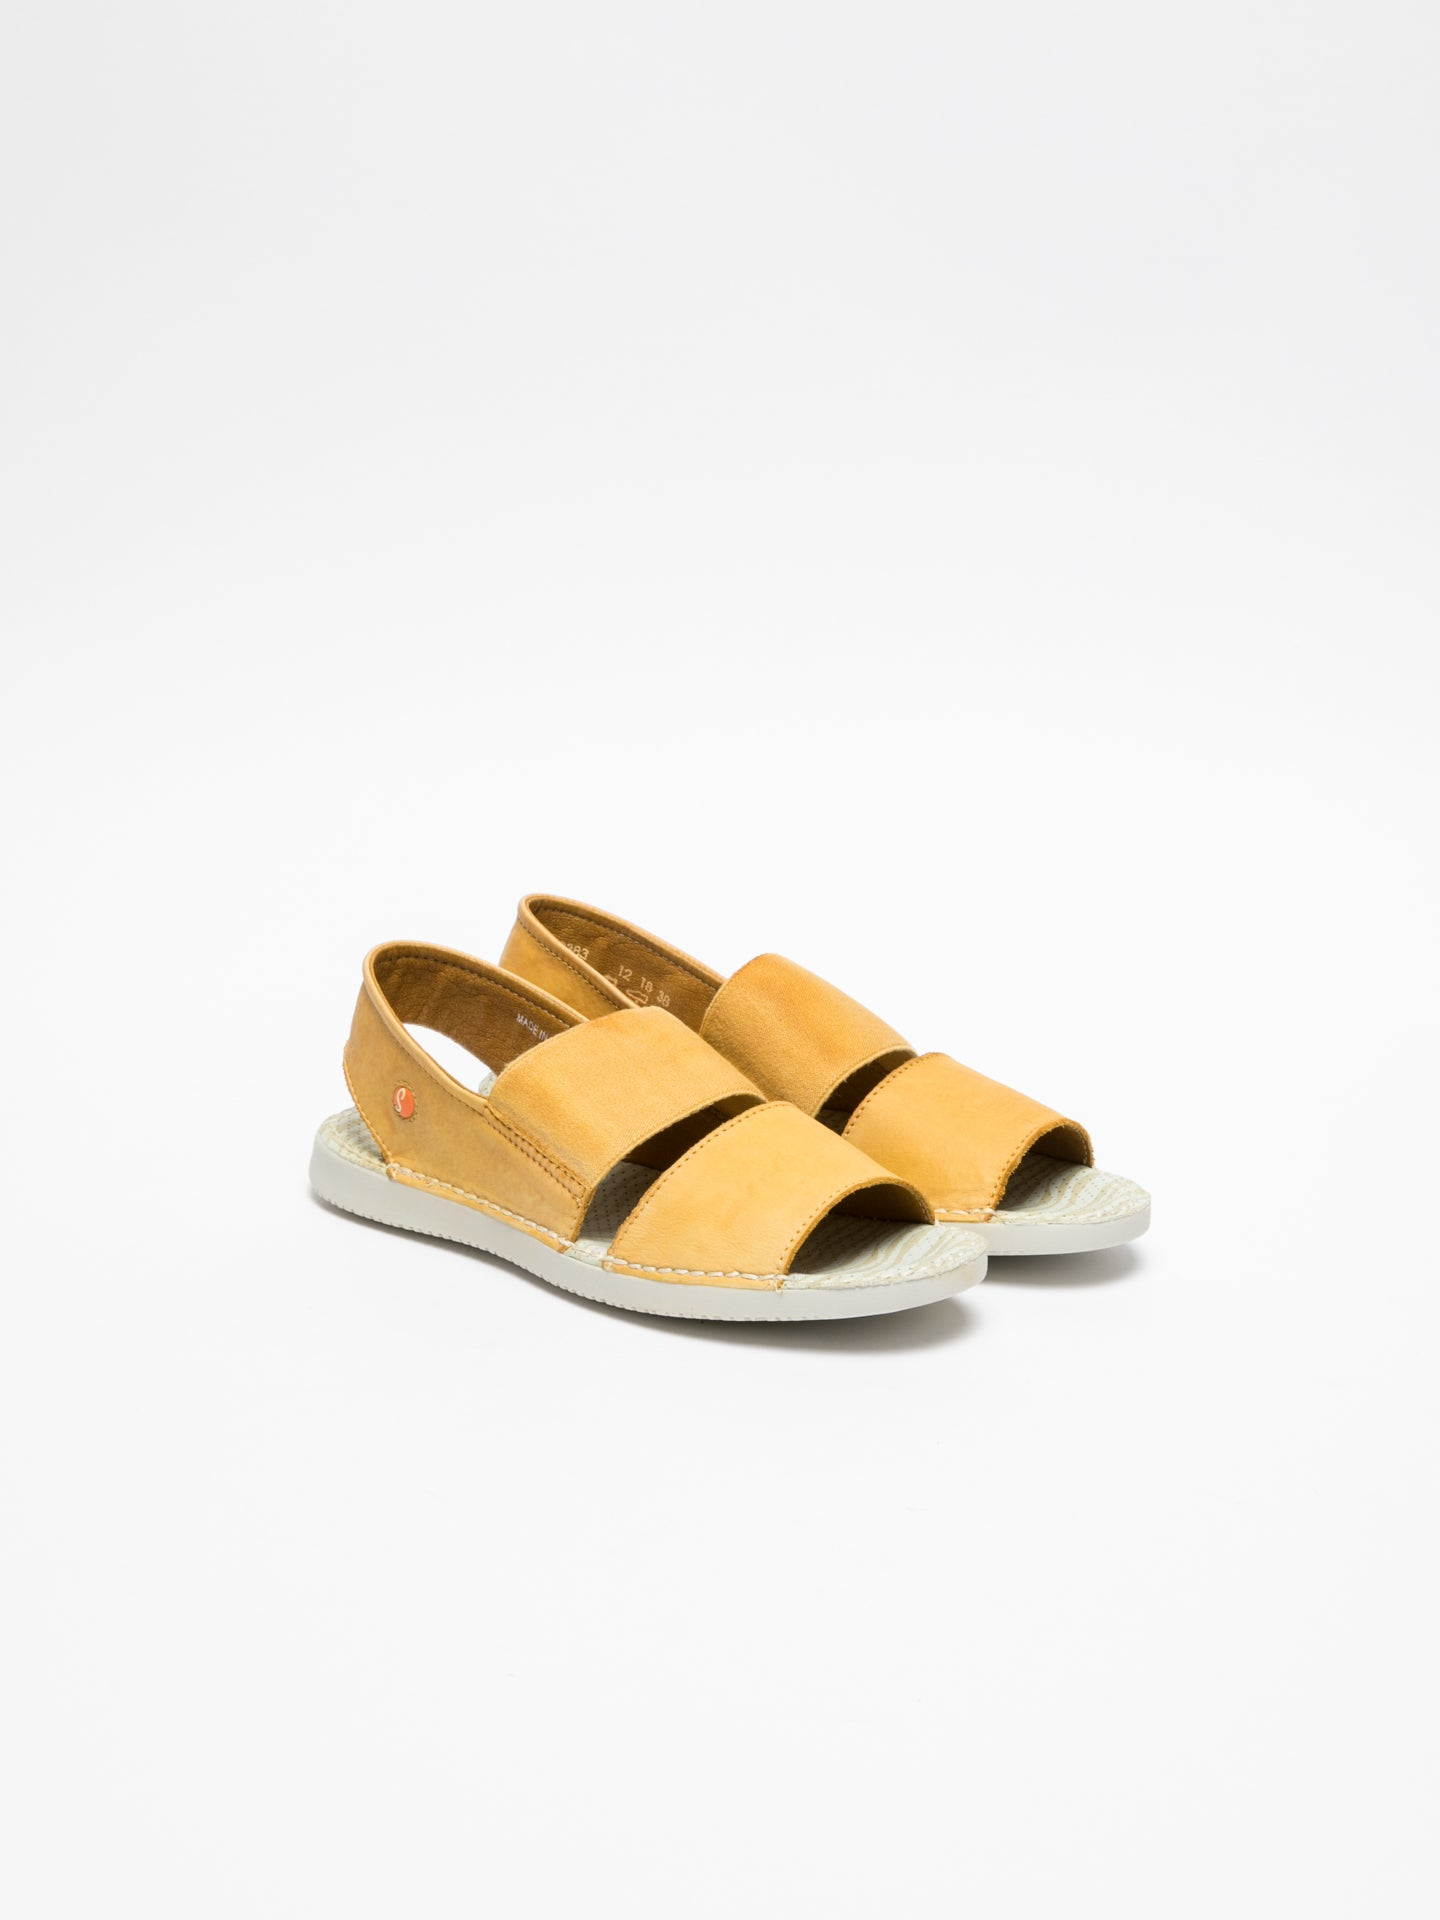 Softinos Yellow Sling-Back Sandals